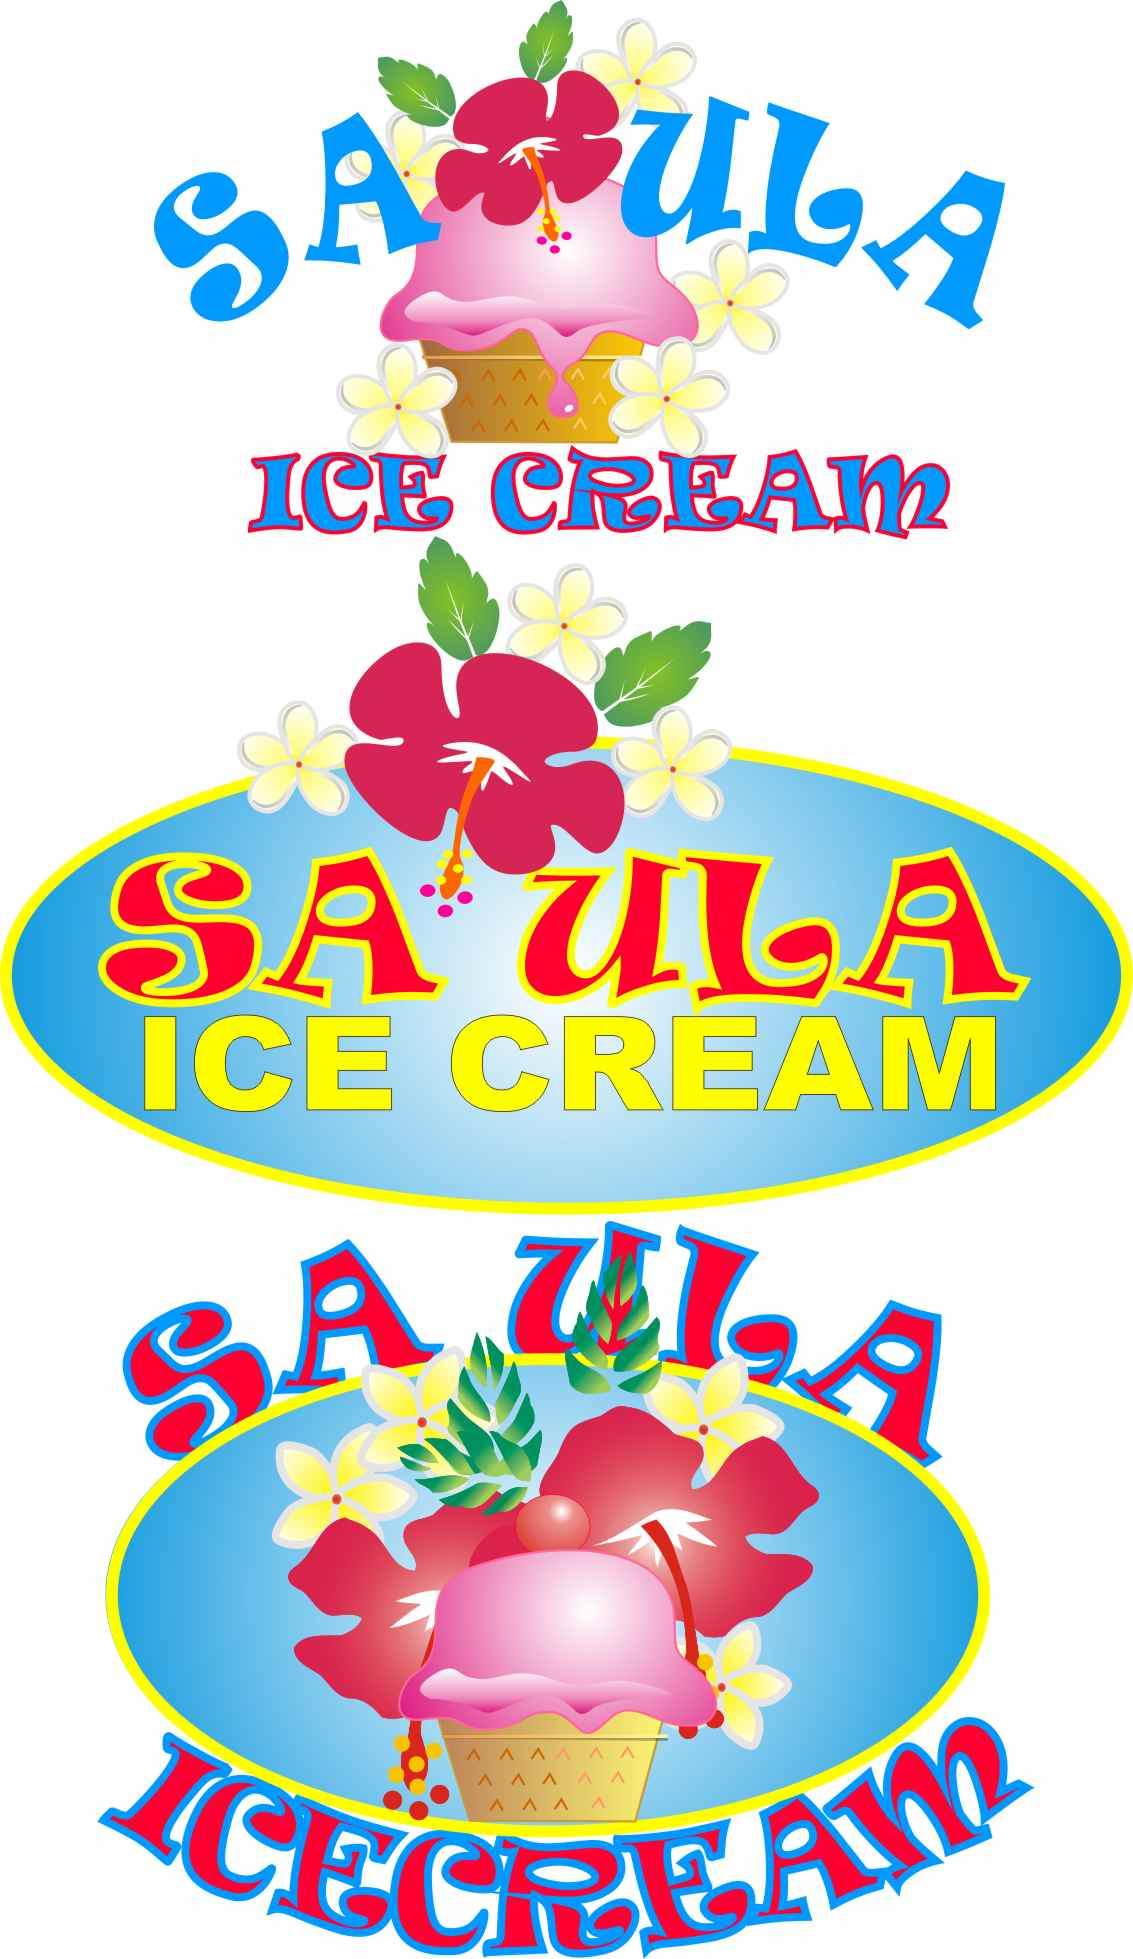 Sa Ula Icecream Fiji